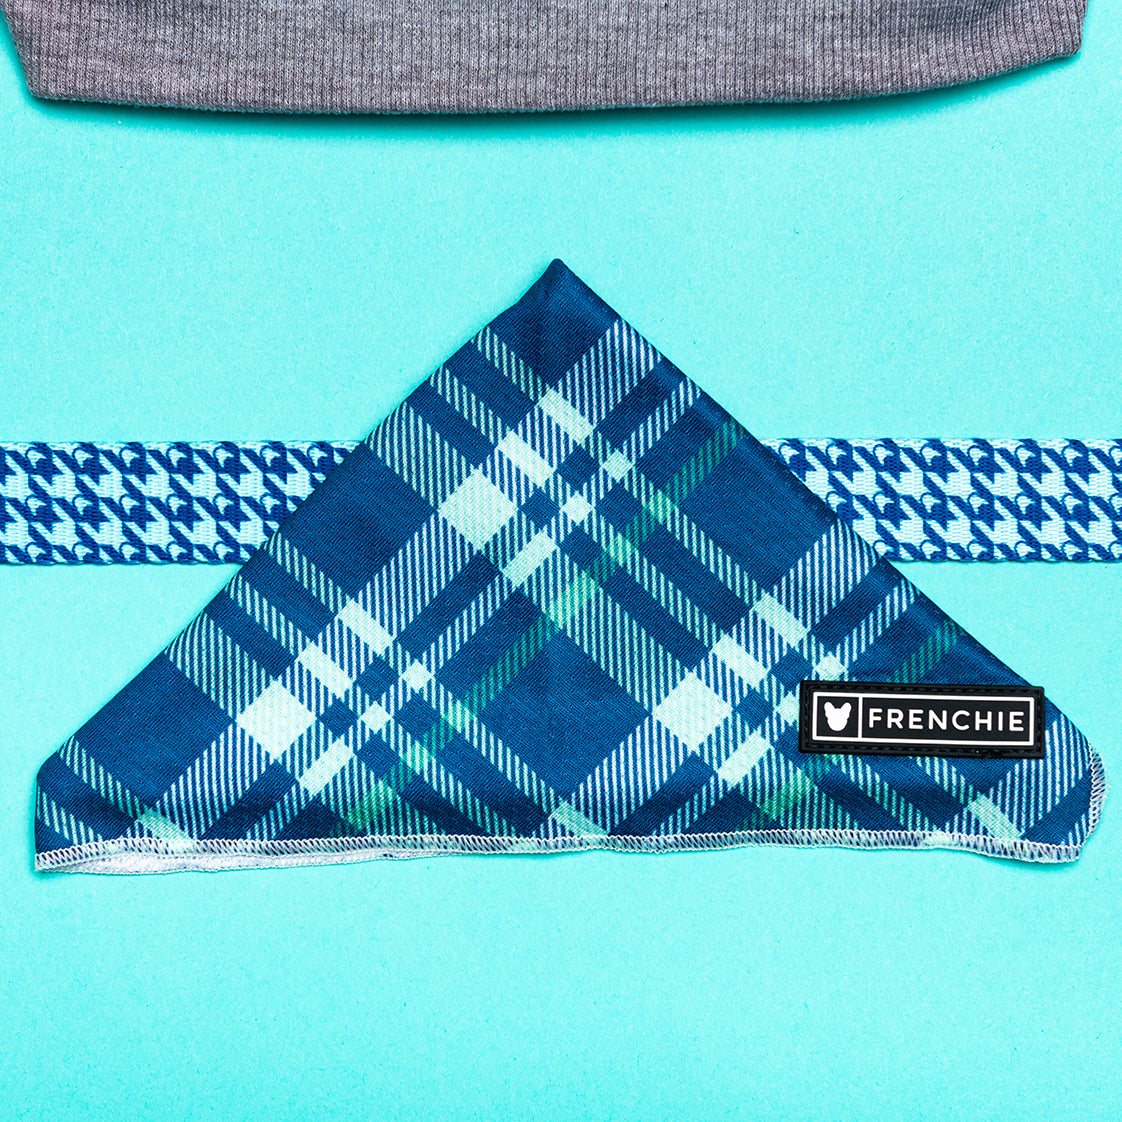 Frenchie Cooling Bandana - Blue Bird Plaid